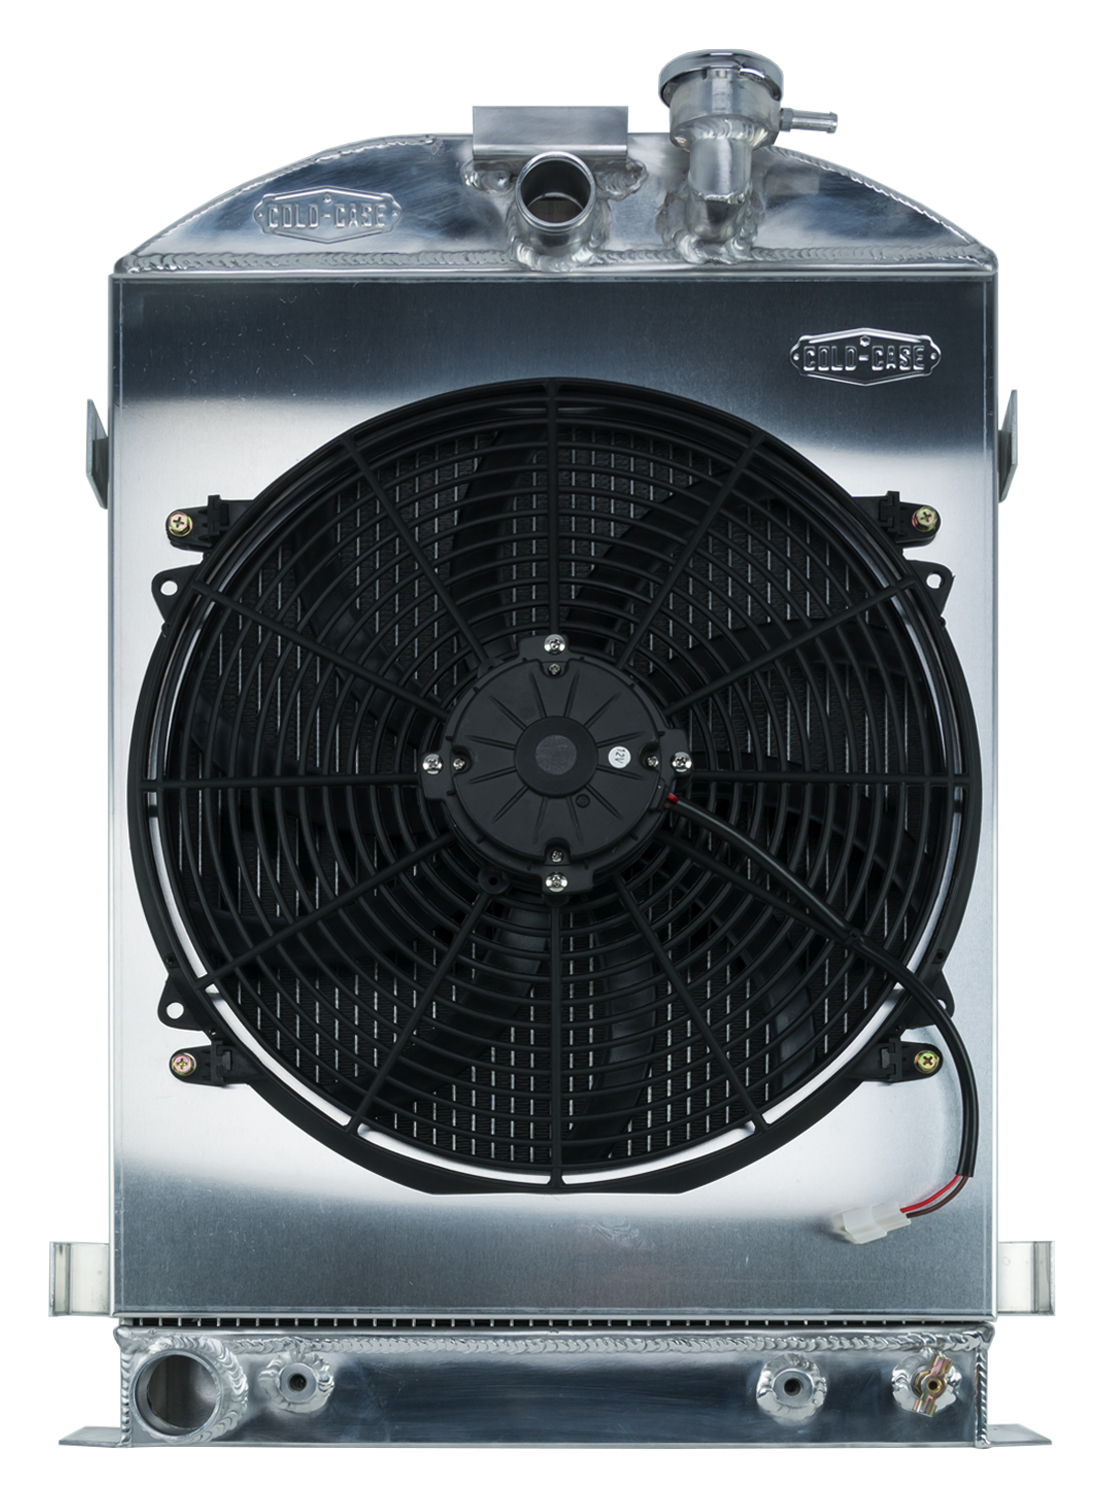 Cold Case 1932 Highboy Ford Engine 27 Inch Aluminum Performance Radiator And 16 Inch Fan Kit